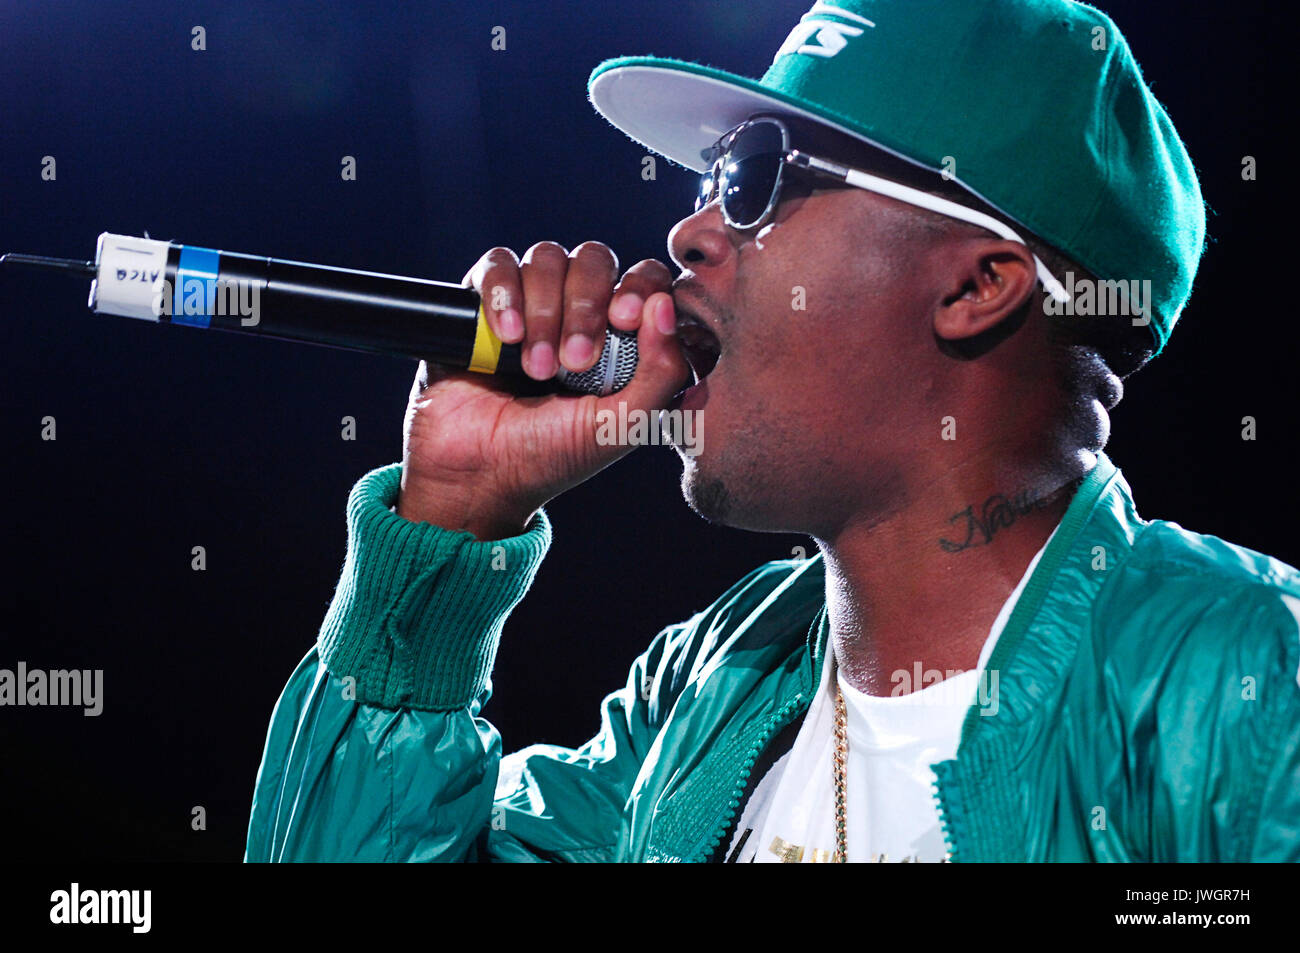 Rapper Nas performs Rock Bells. - Stock Image